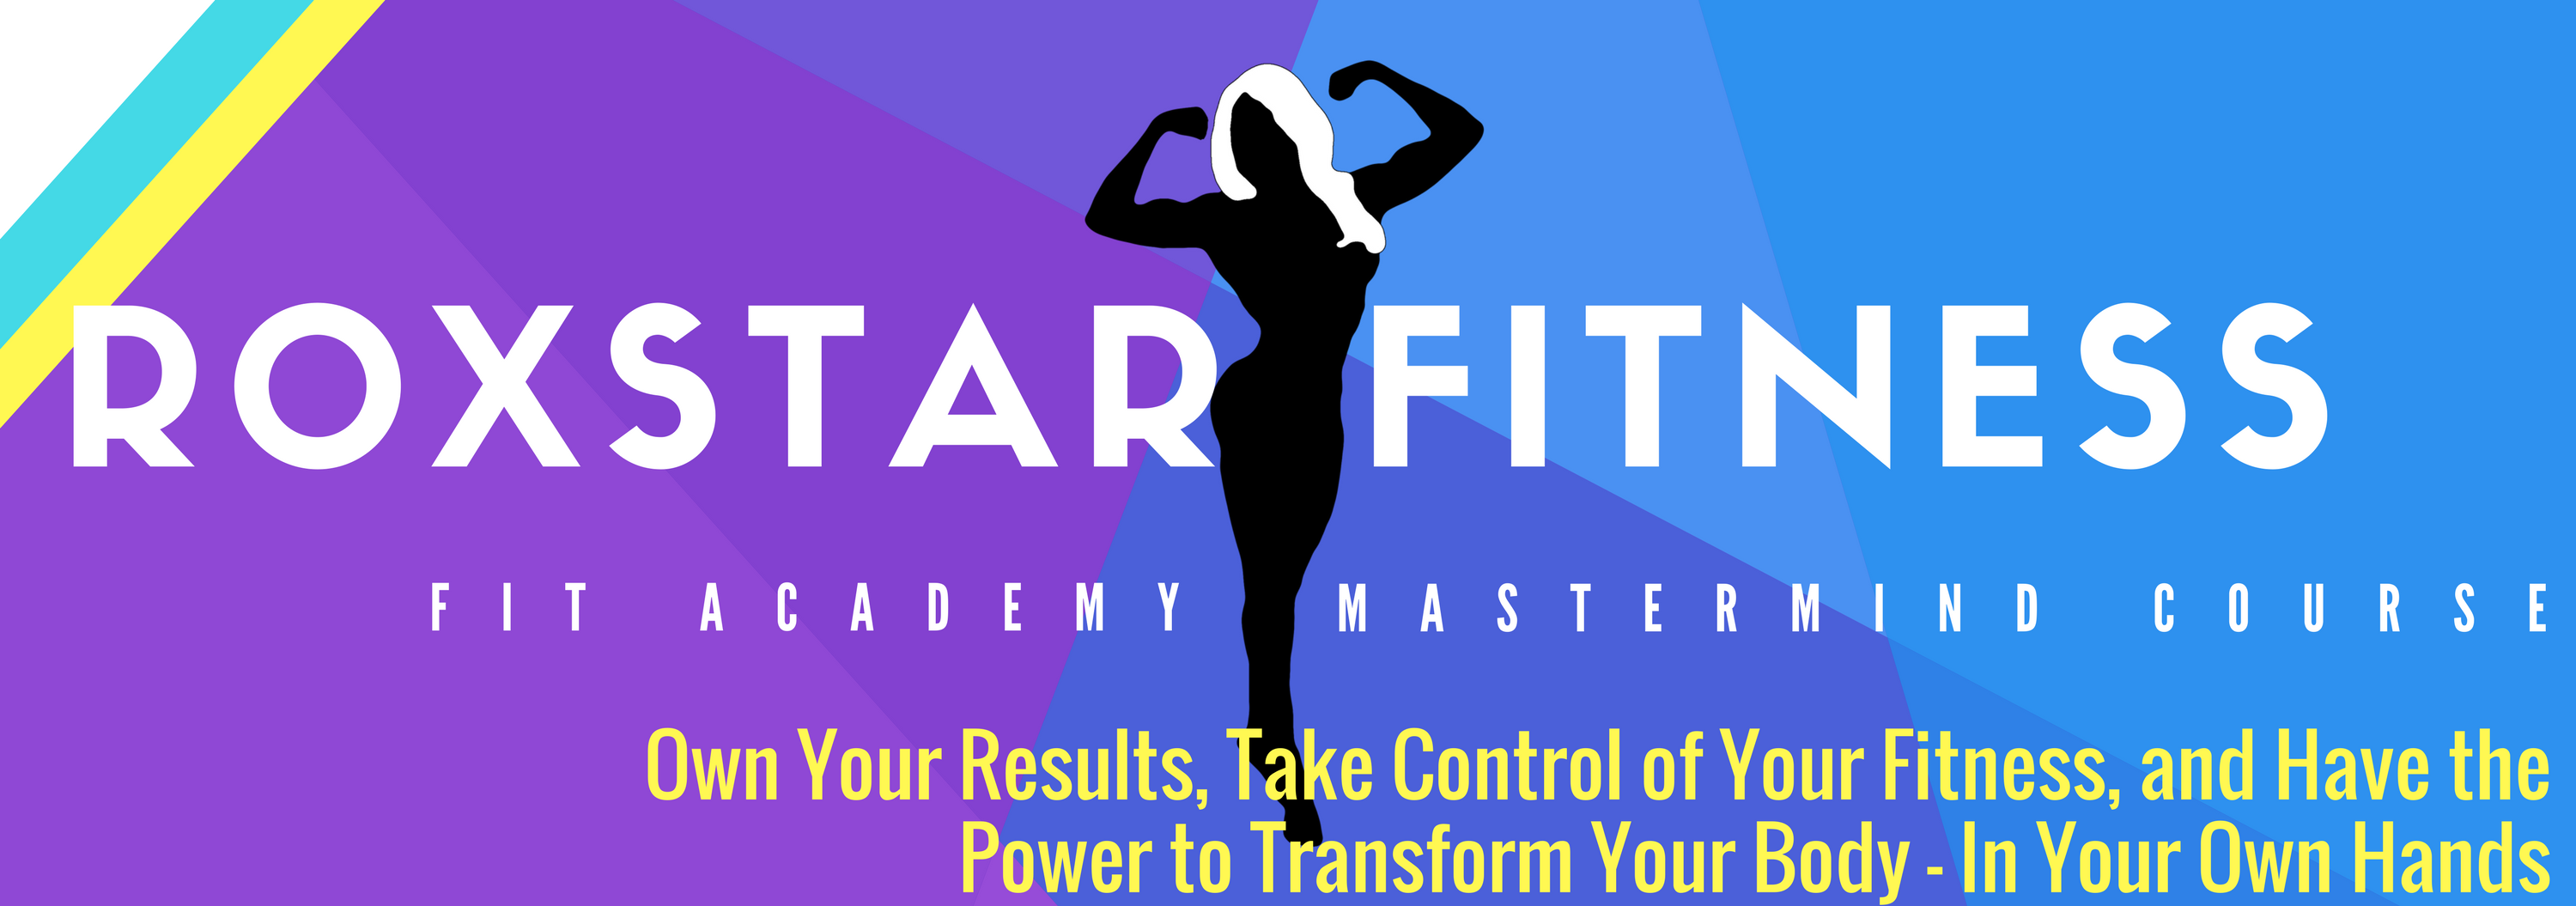 RoxStar Fit Academy: Total Fitness Lifestyle Transformation Course